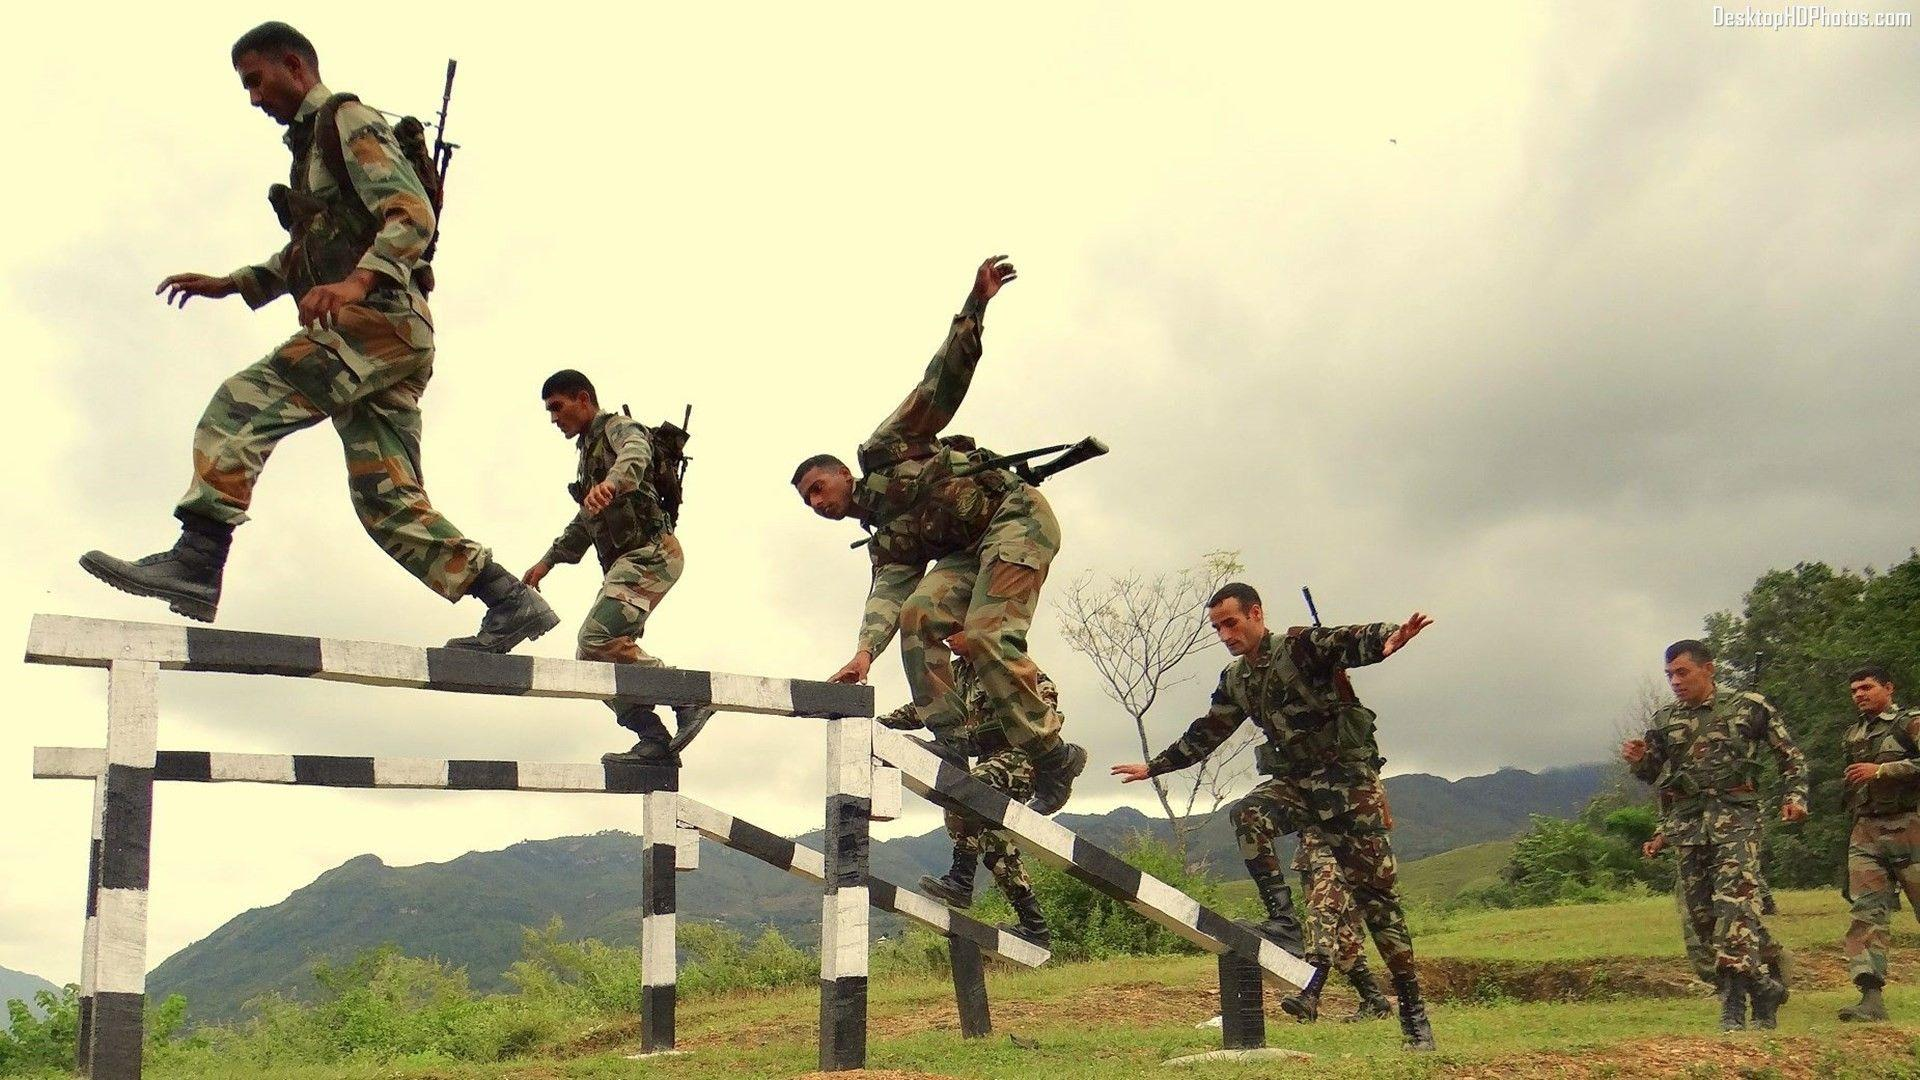 Army Wallpapers For Mobile Phones Impremedia Net